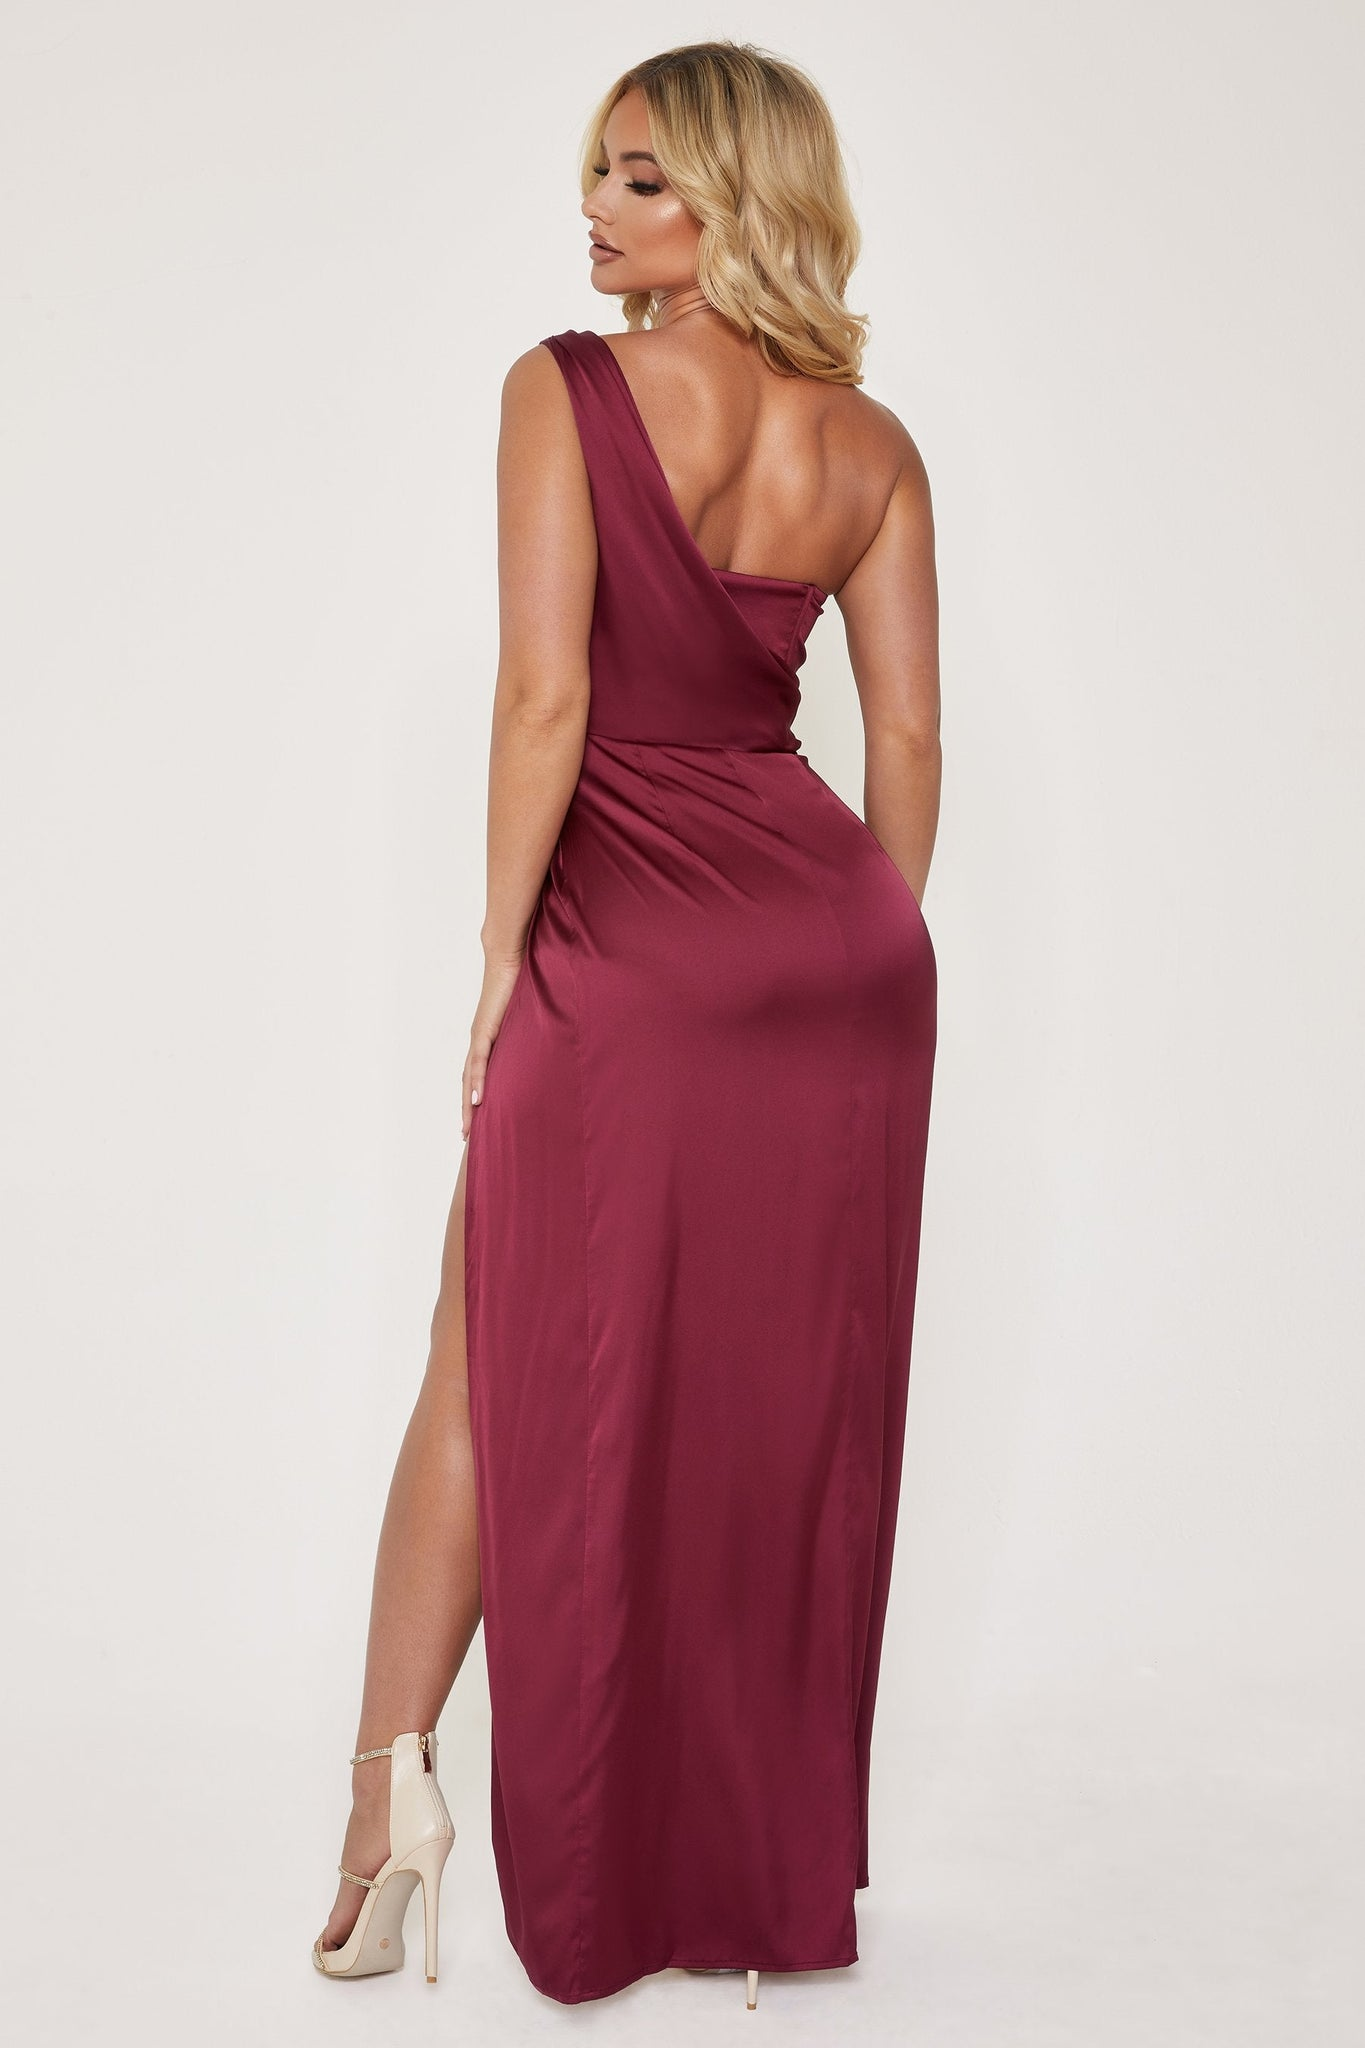 Aella Corsetted Asymmetric Drape Maxi Dress - Burgundy - MESHKI